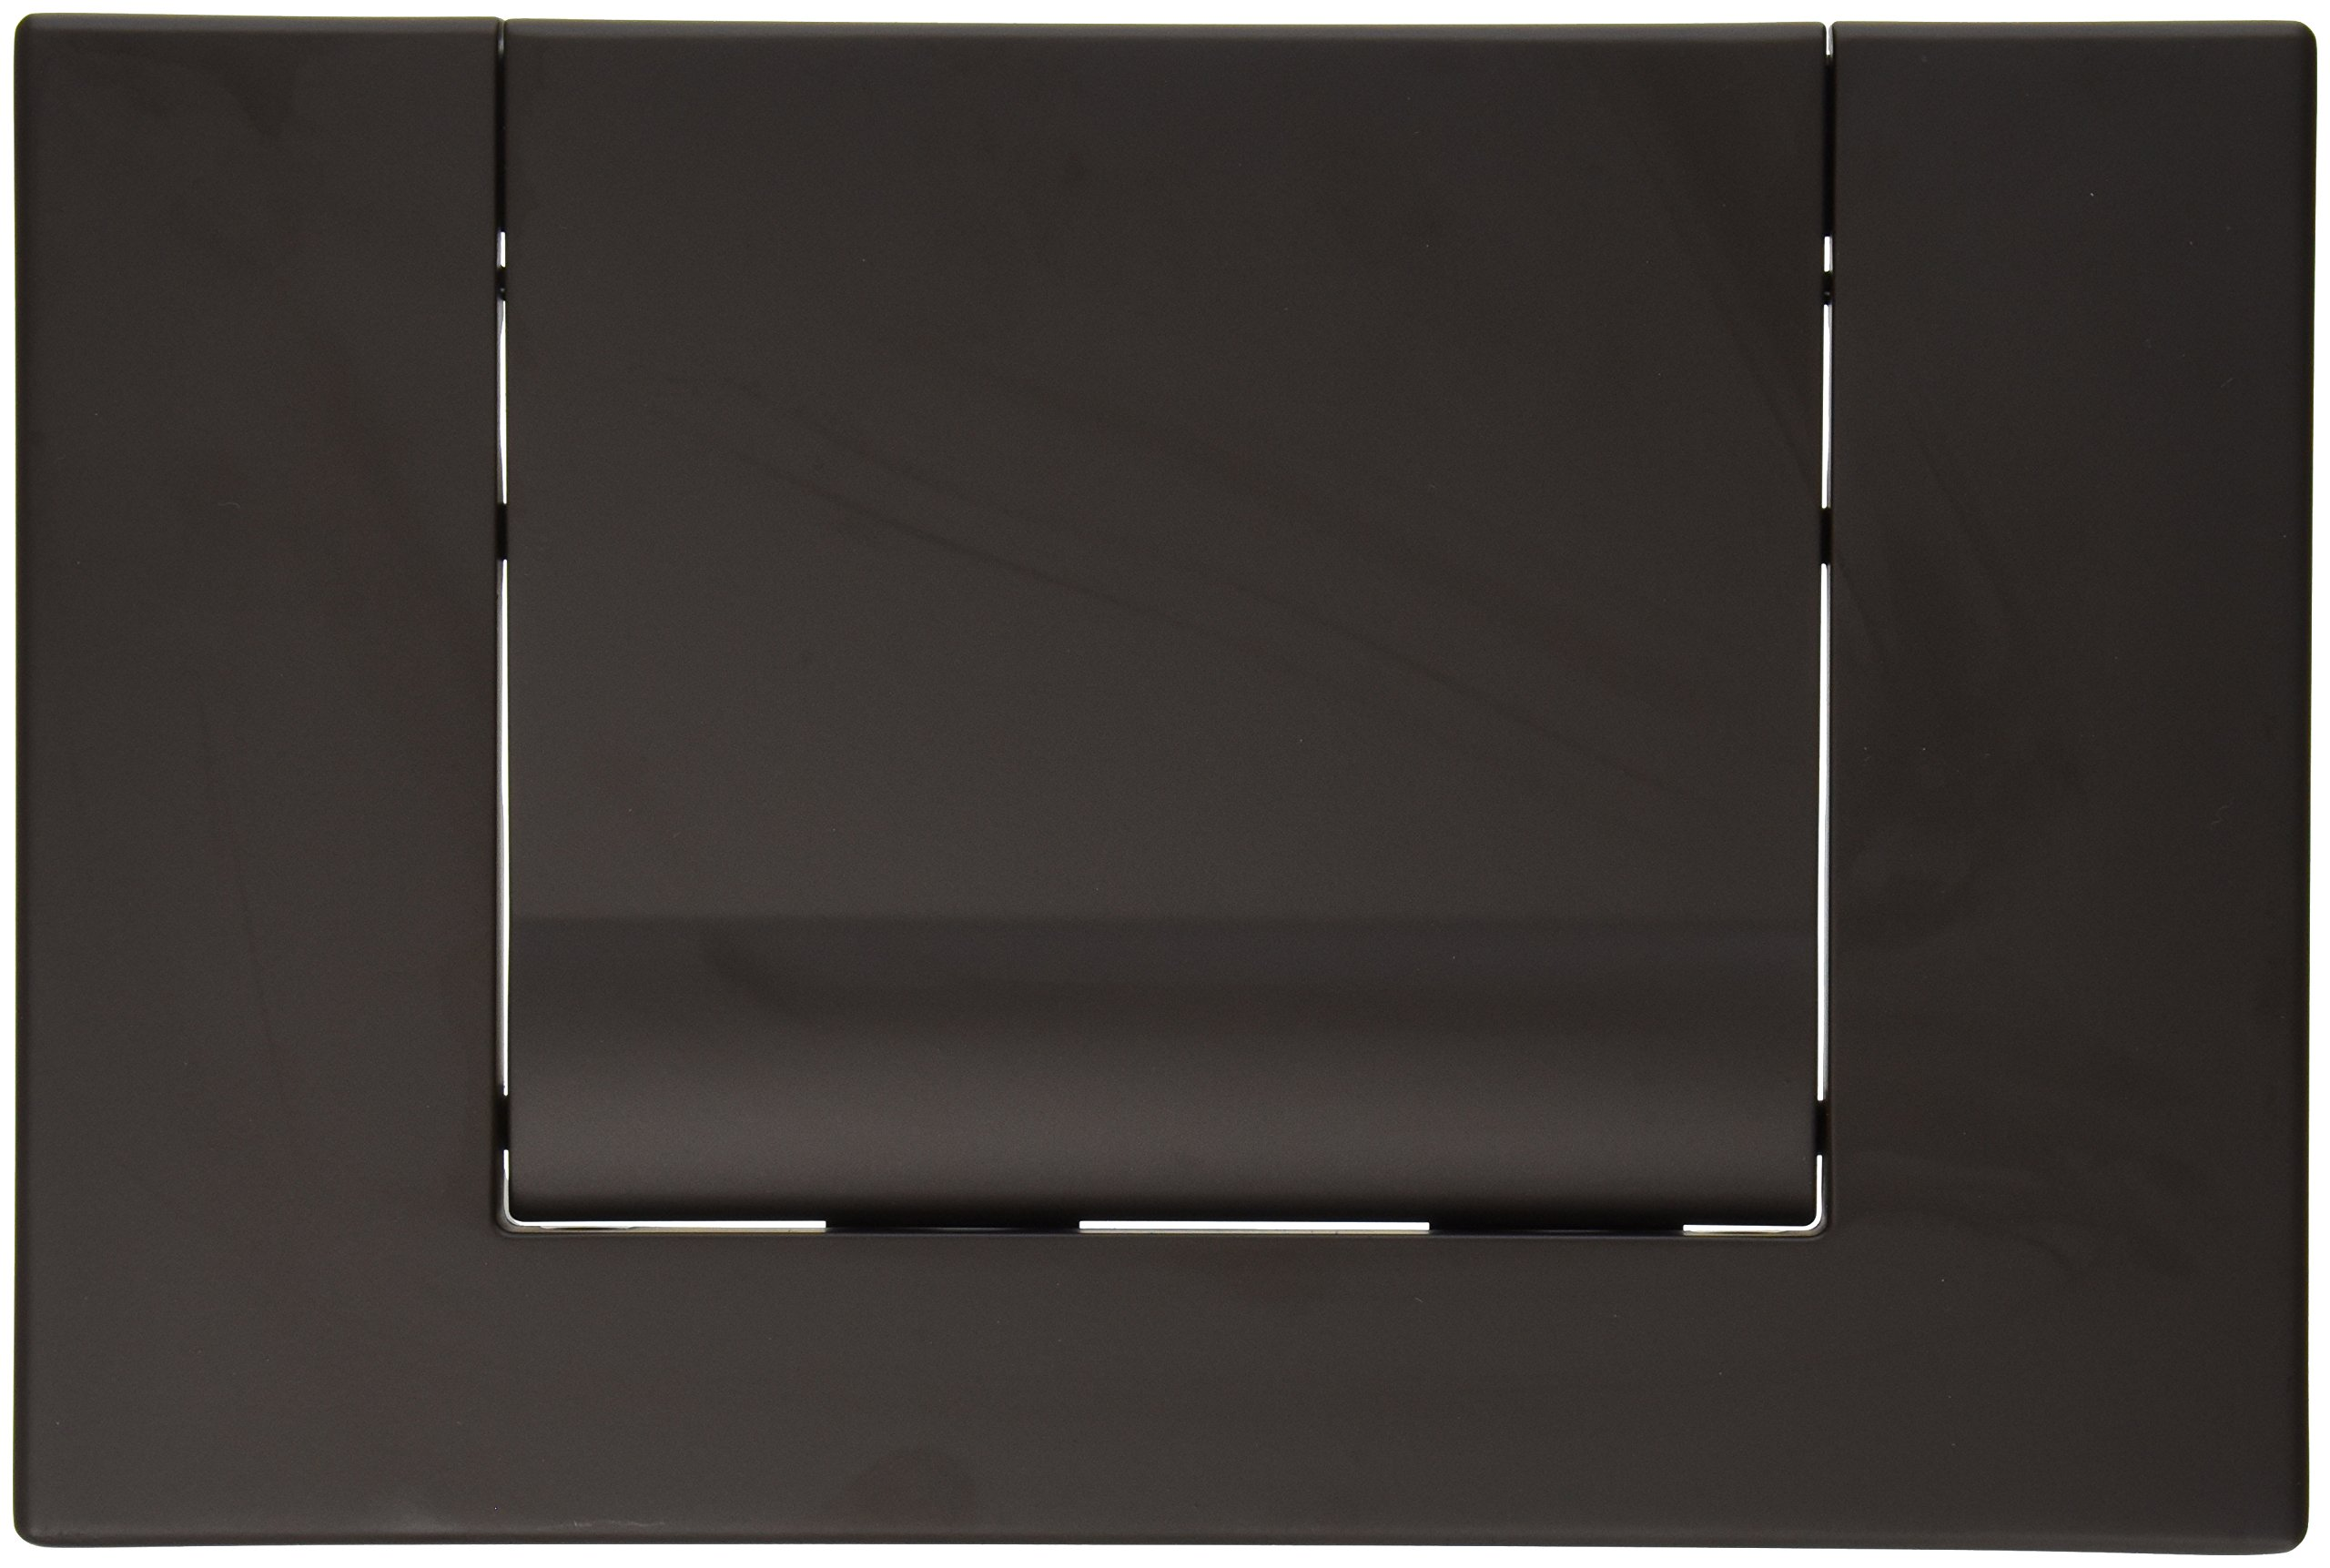 Geberit 115.760.HM.1 Tango Actuator Flush Plate, Hard Coat Oil Rubbed Bronze by Geberit